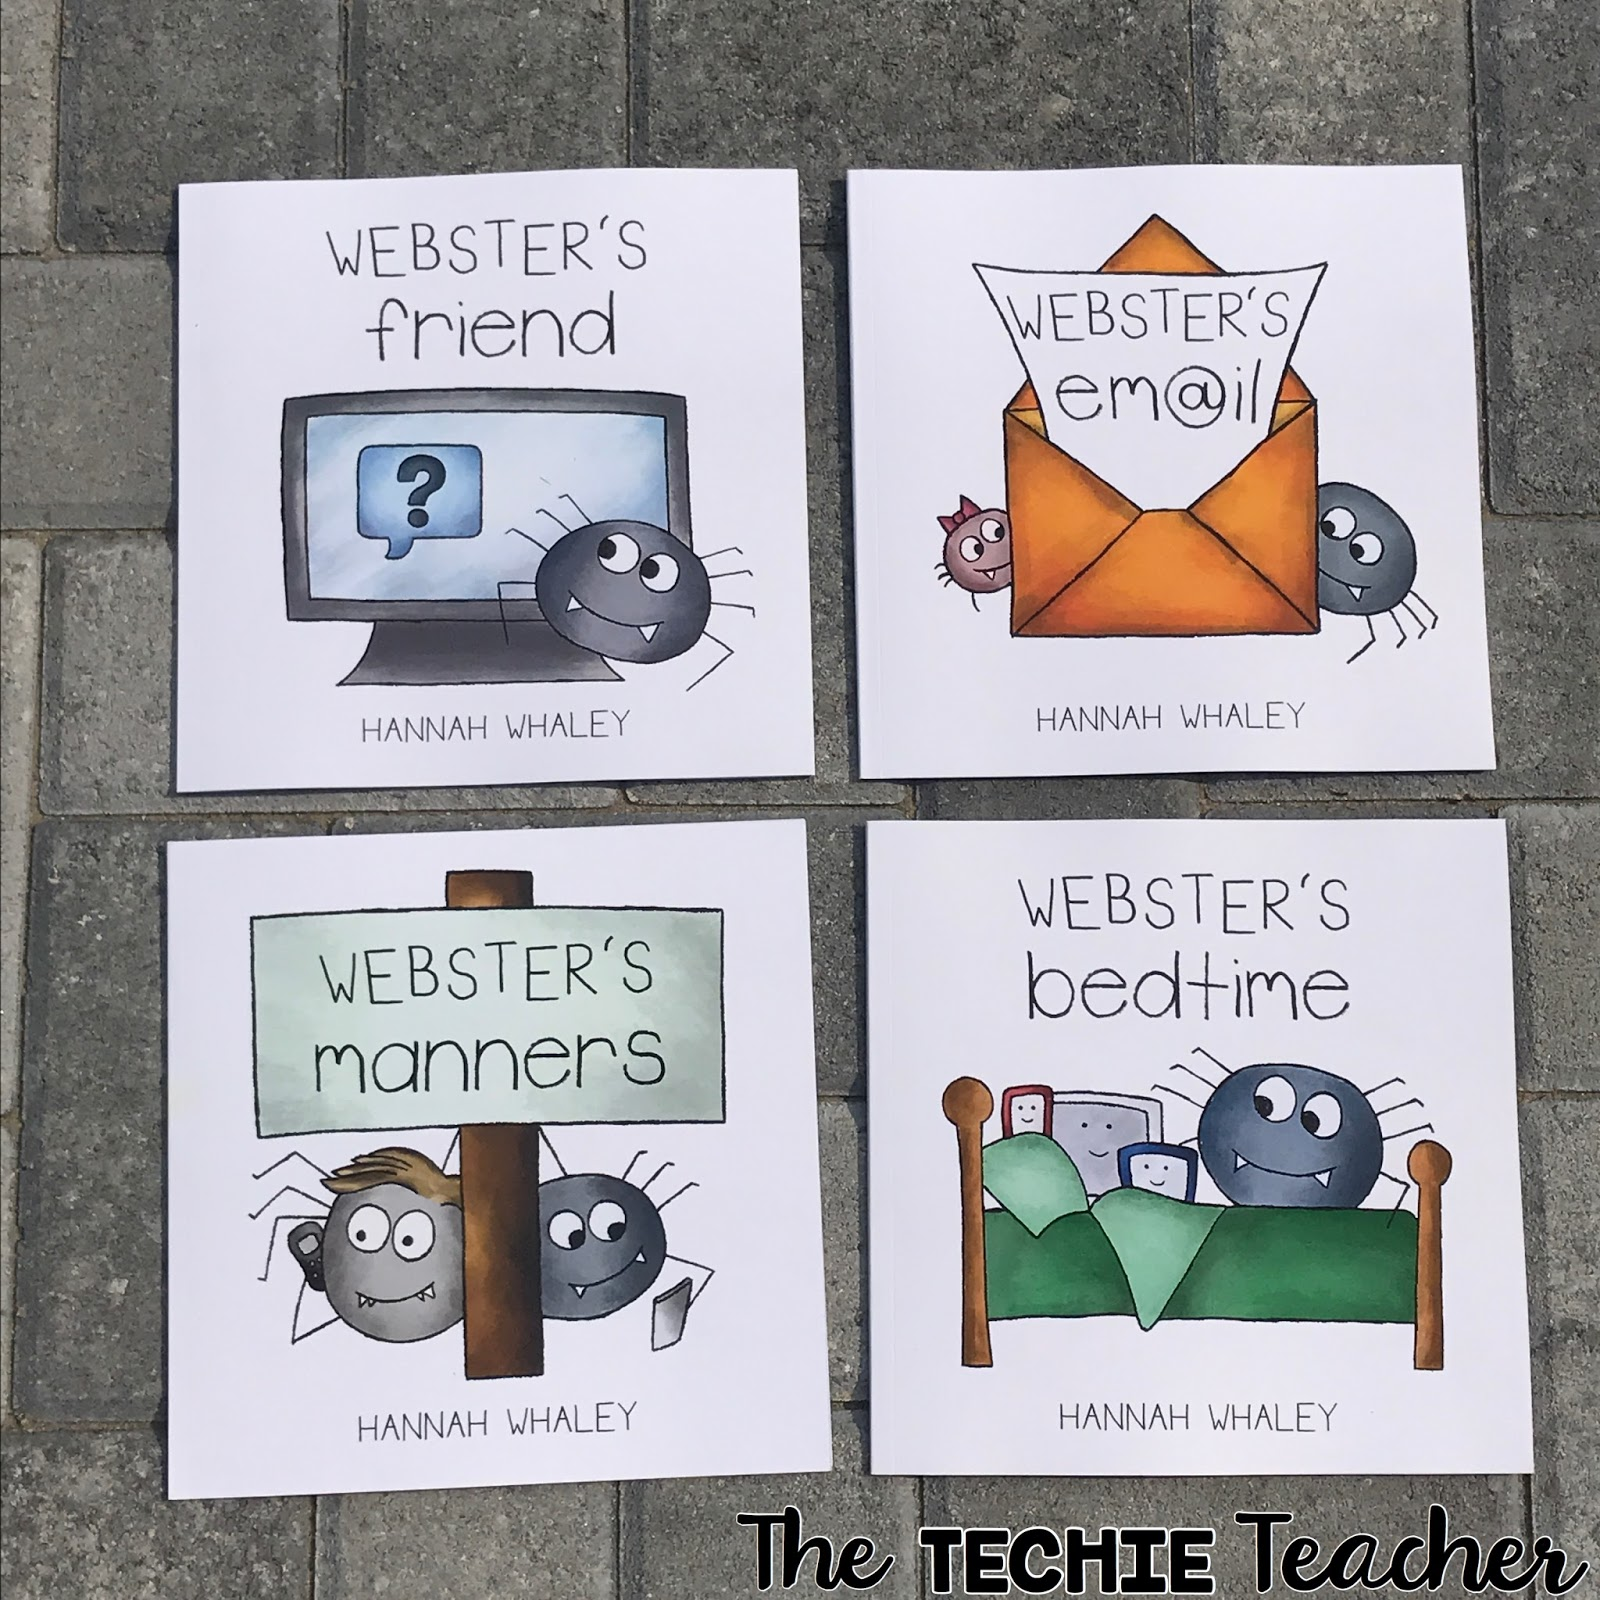 Webster's Friend, Webster's Email, Webster's Manners and Webster's Bedtime are the cutest collection to teach children about digital issues. Makes great read alouds for digital citizenship lessons!